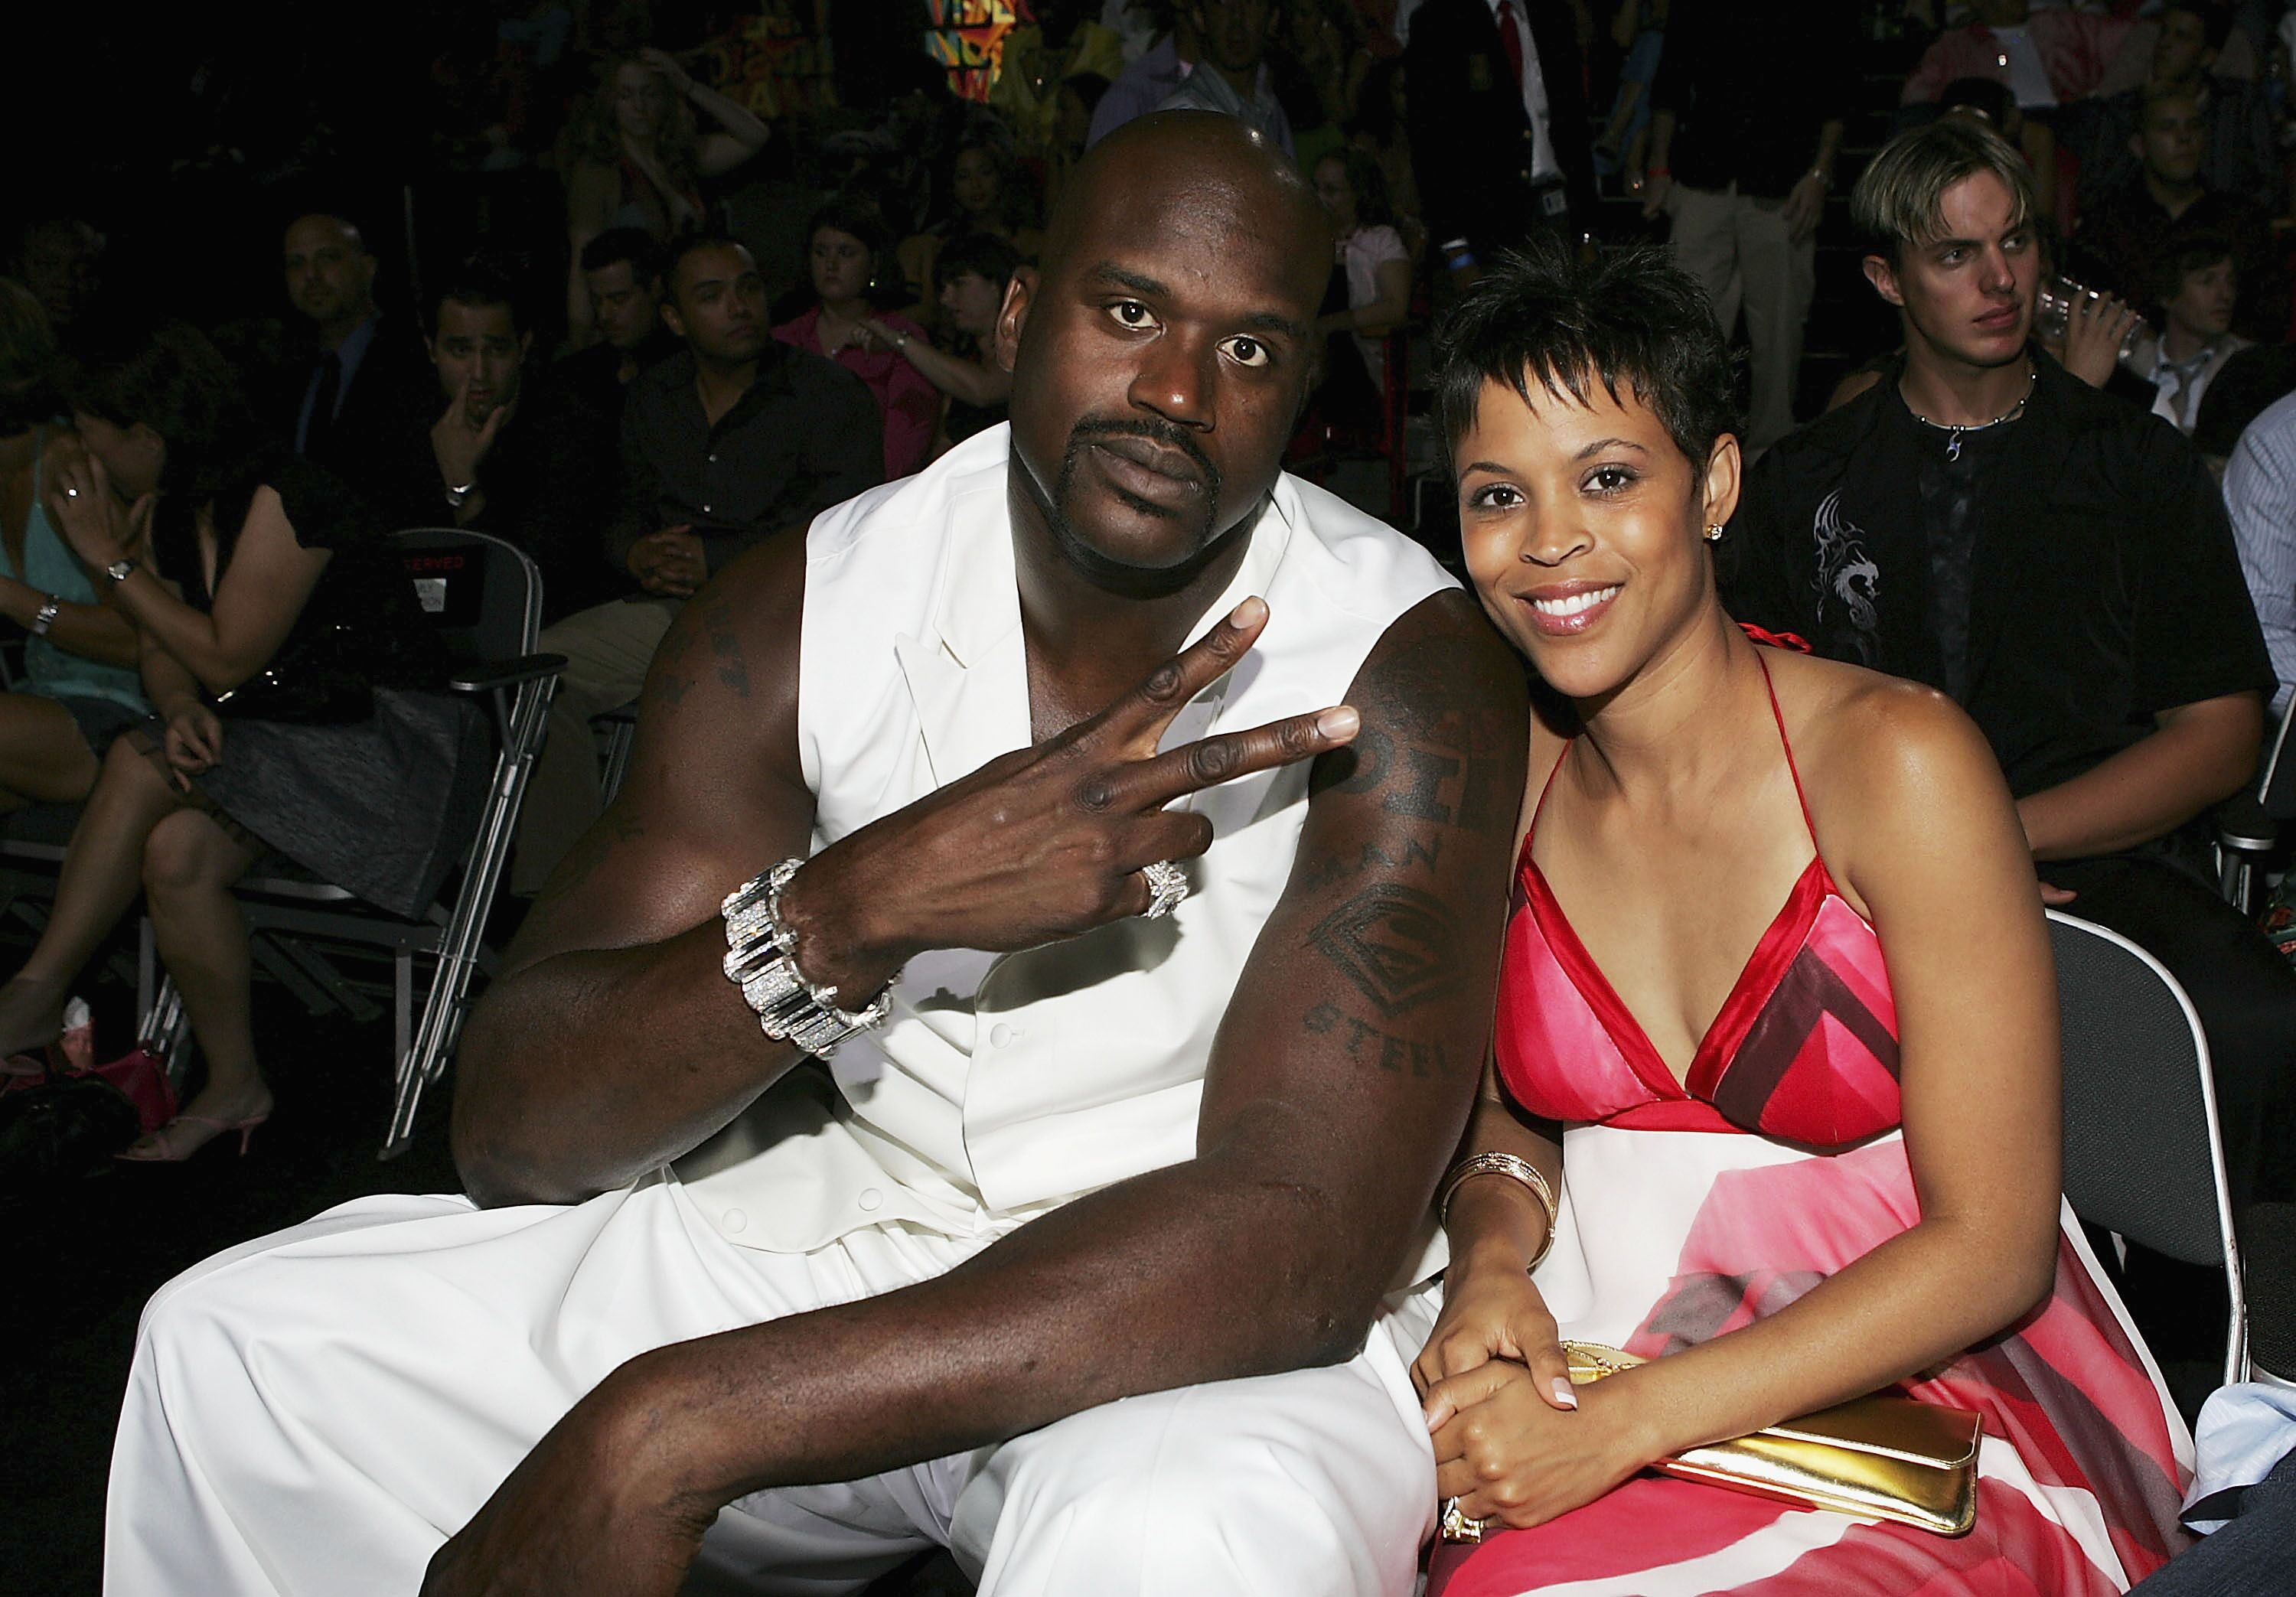 Shaquille O'Neal and wife Shaunie O'Neal at the 2004 MTV Video Music Awards. | Source: Getty Images